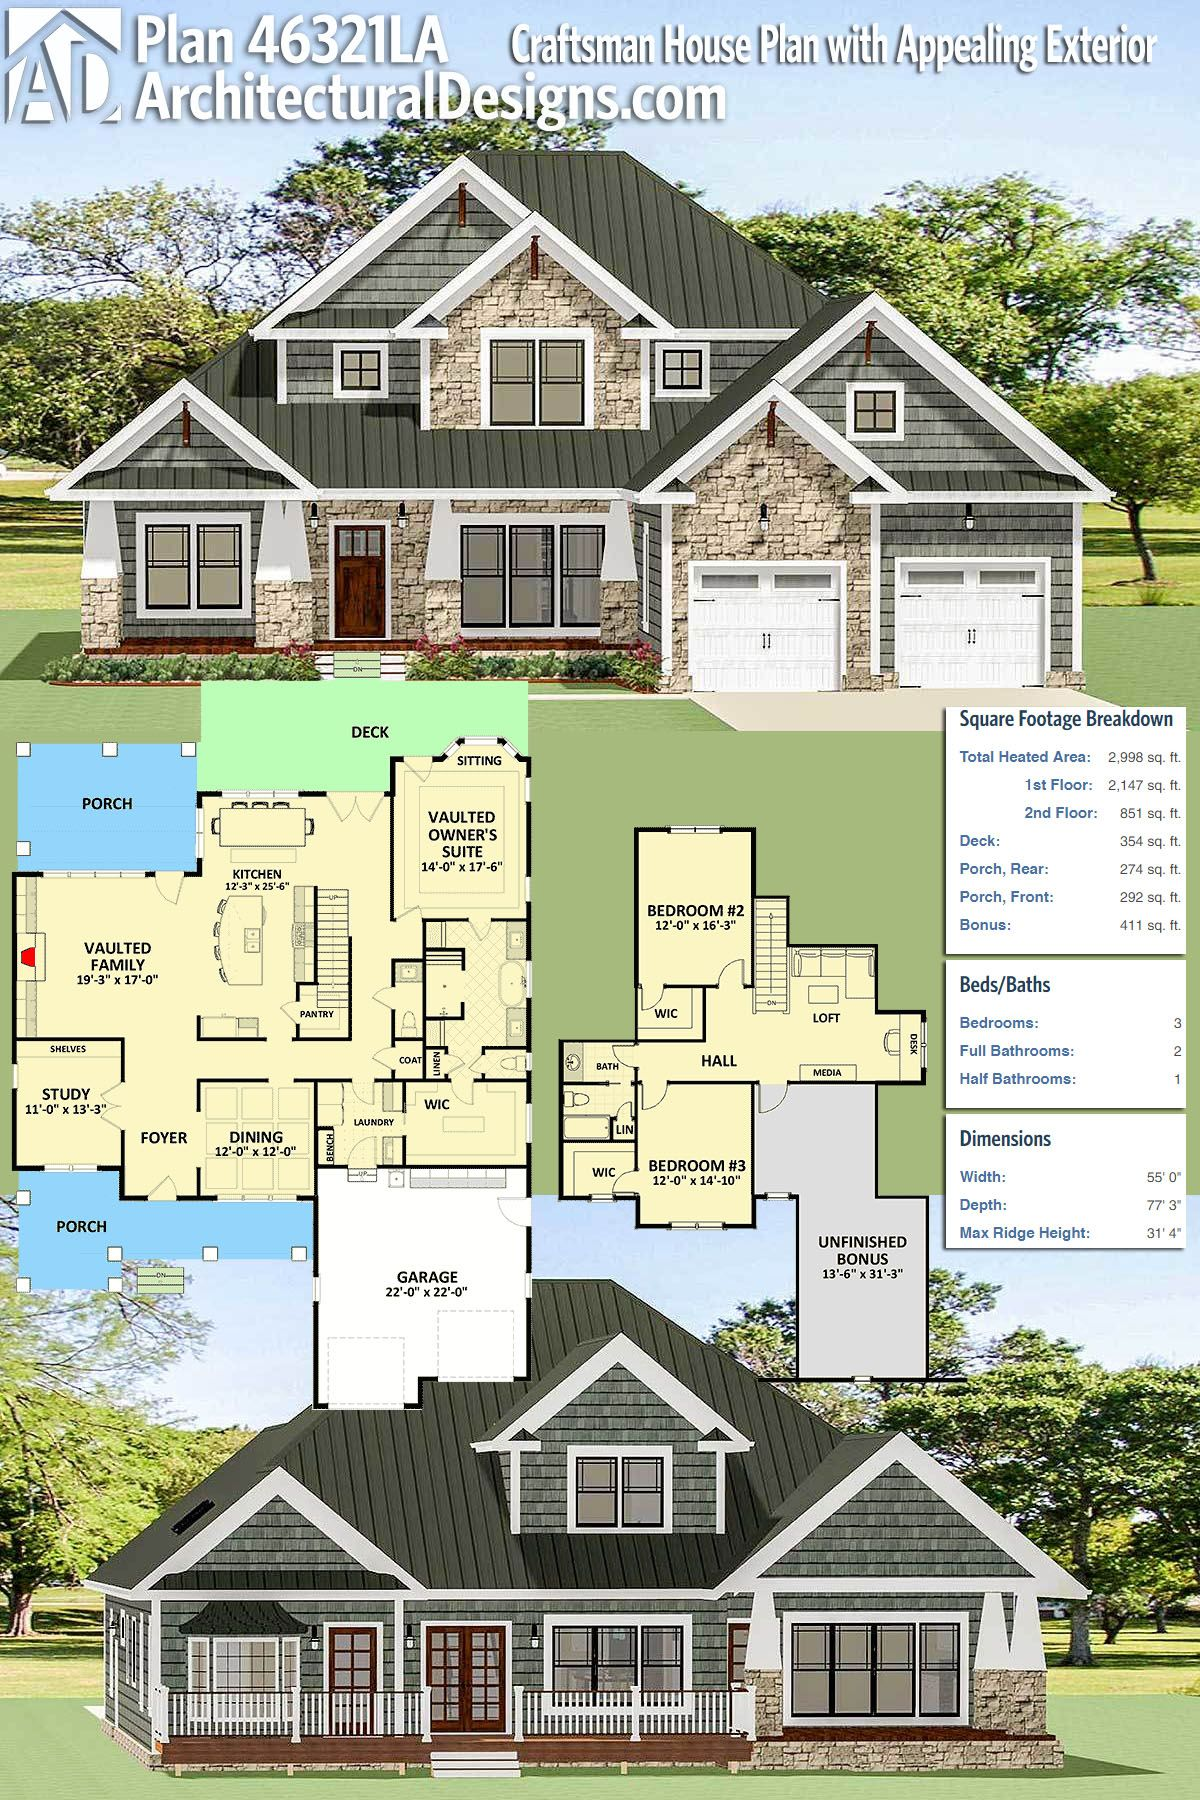 Plan 46321la Craftsman House Plan With Appealing Exterior Craftsman House Plans Craftsman House House Plans